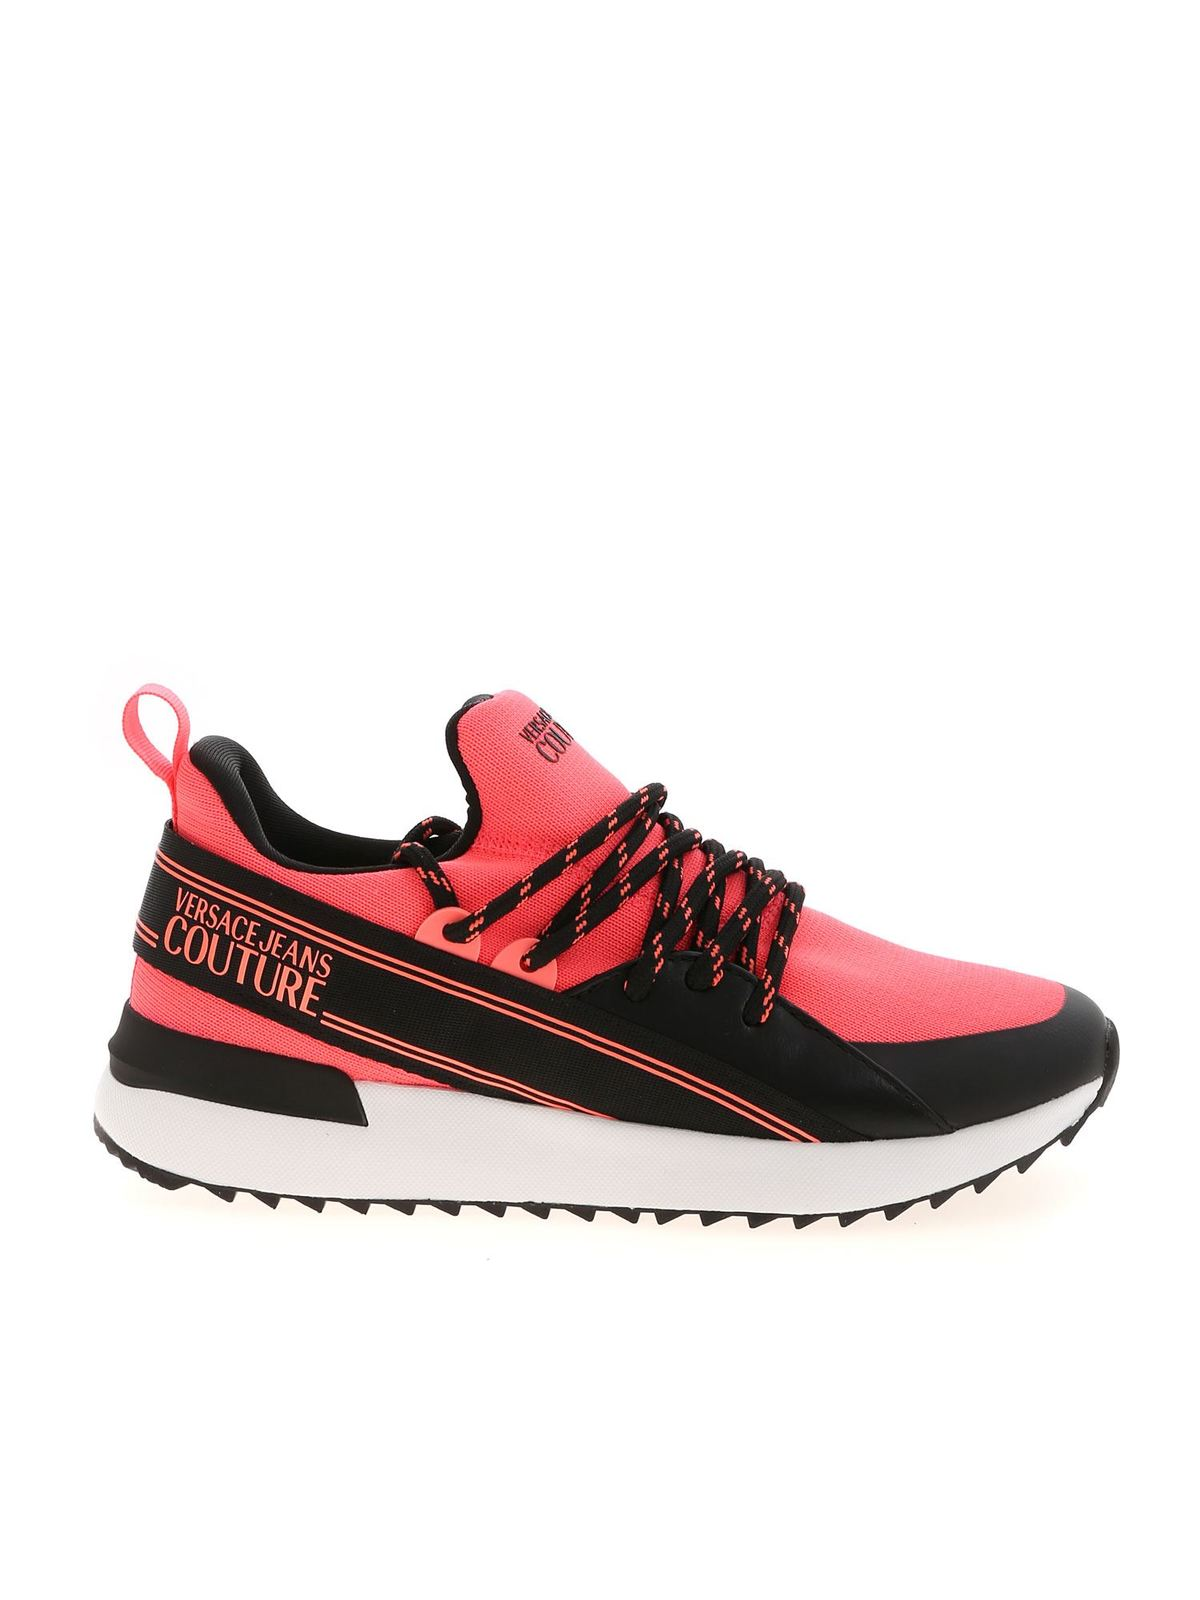 Versace Jeans Couture BLACK AND CORAL RED SNEAKERS